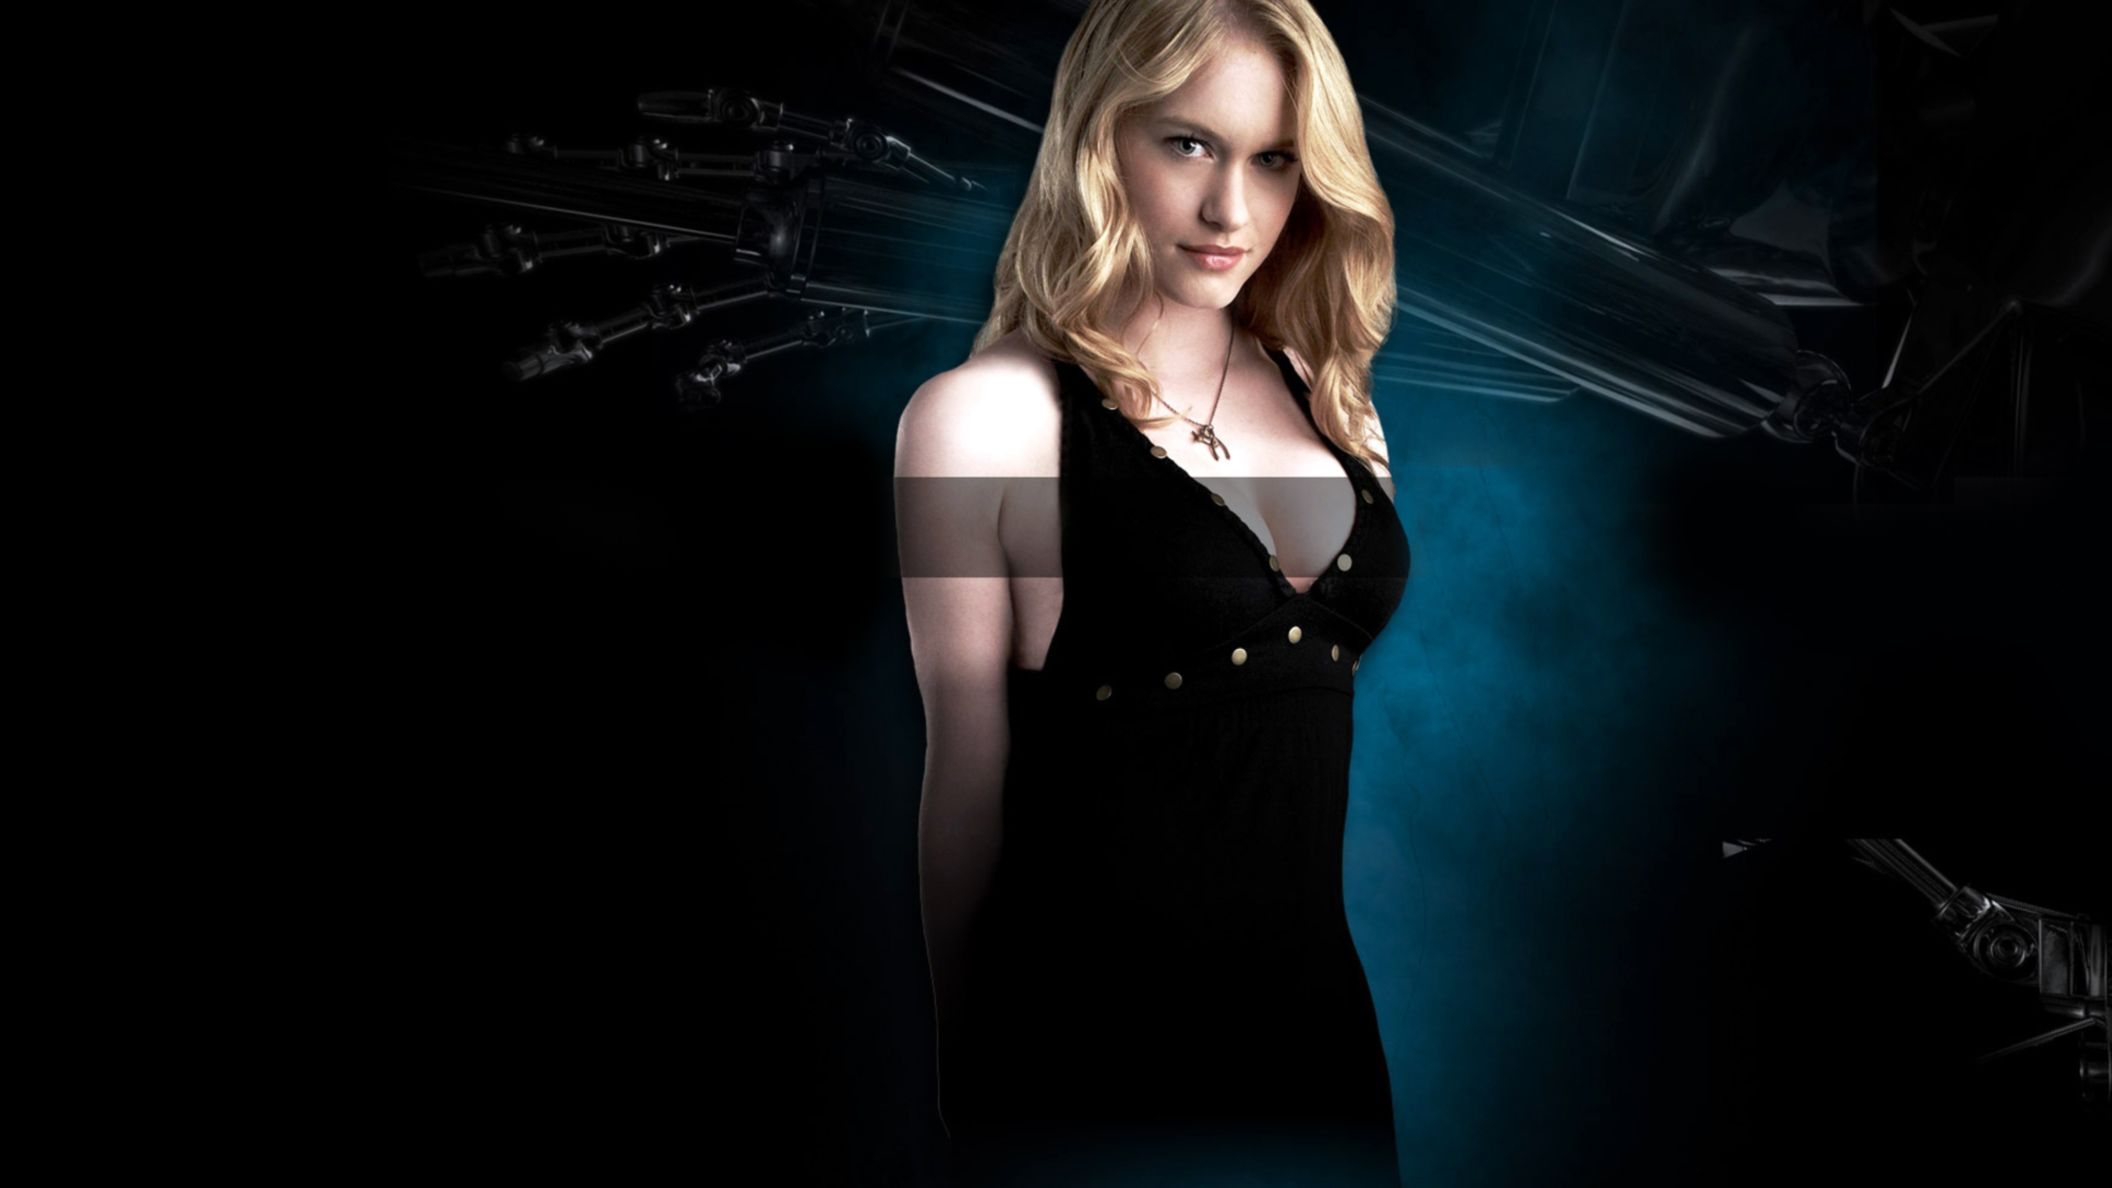 Download free HD Leven Rambin HD Wallpaper, image